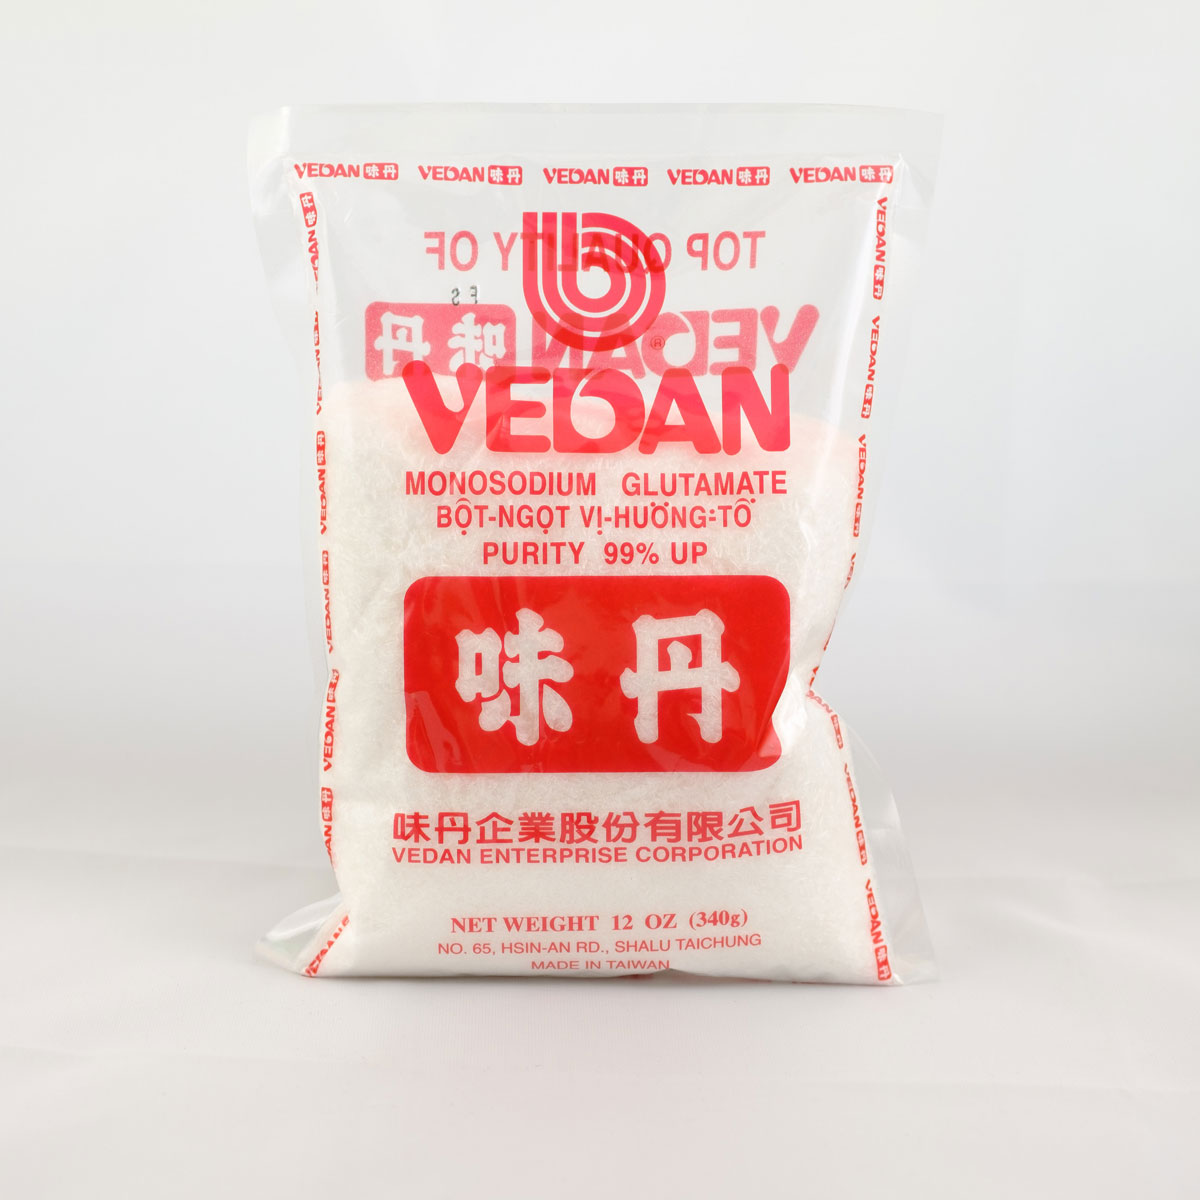 Vedan Monosodium Glutamate (12 oz) | Sunny Maid Corporation